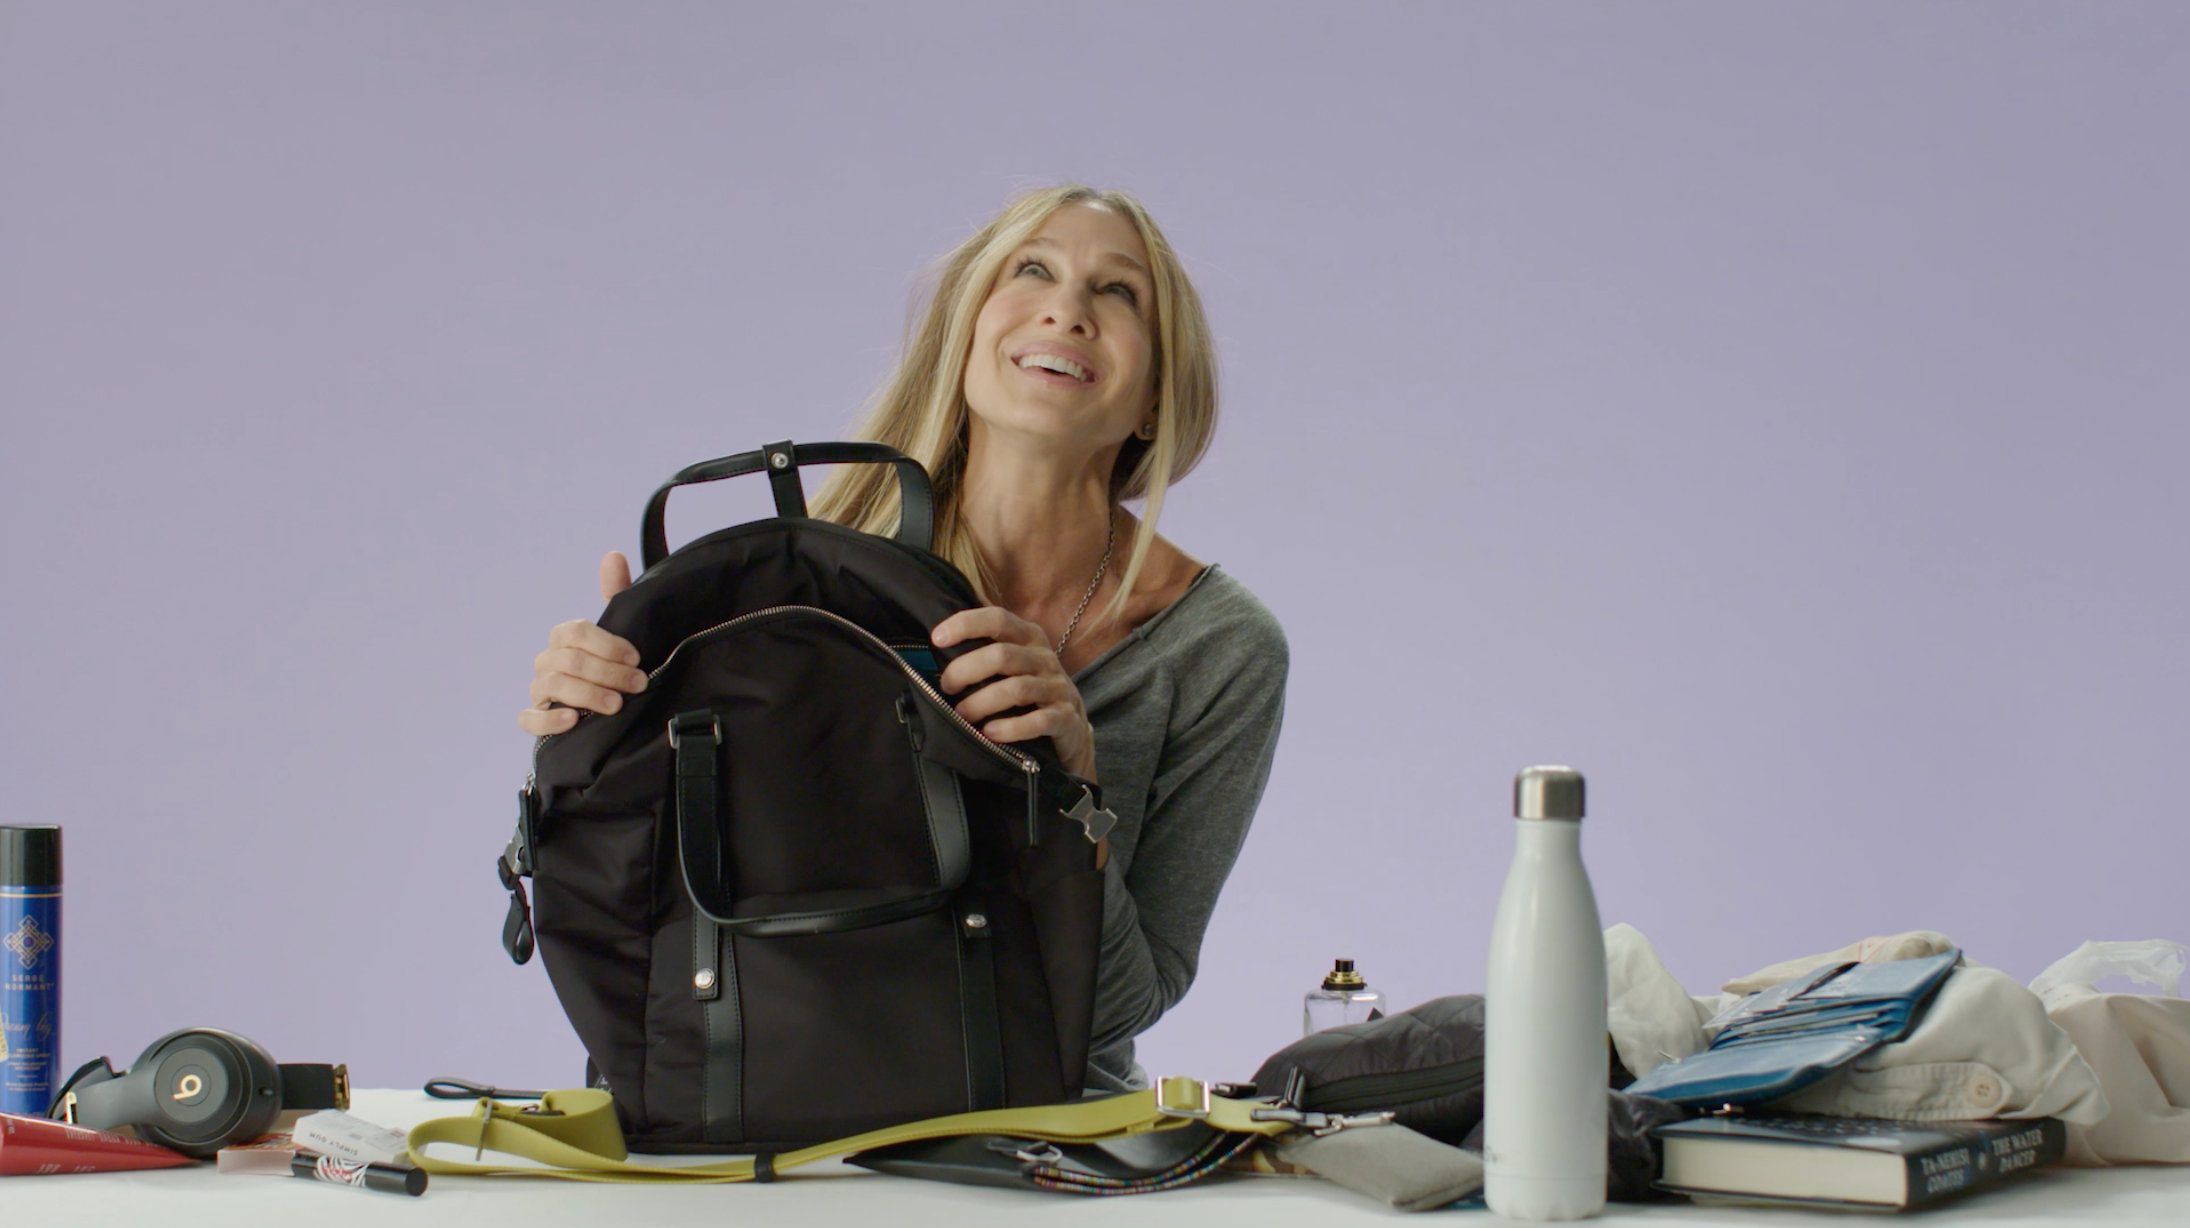 Sarah Jessica Parker Shows off What's in Her Backpack—an Oprah's Favorite Thing